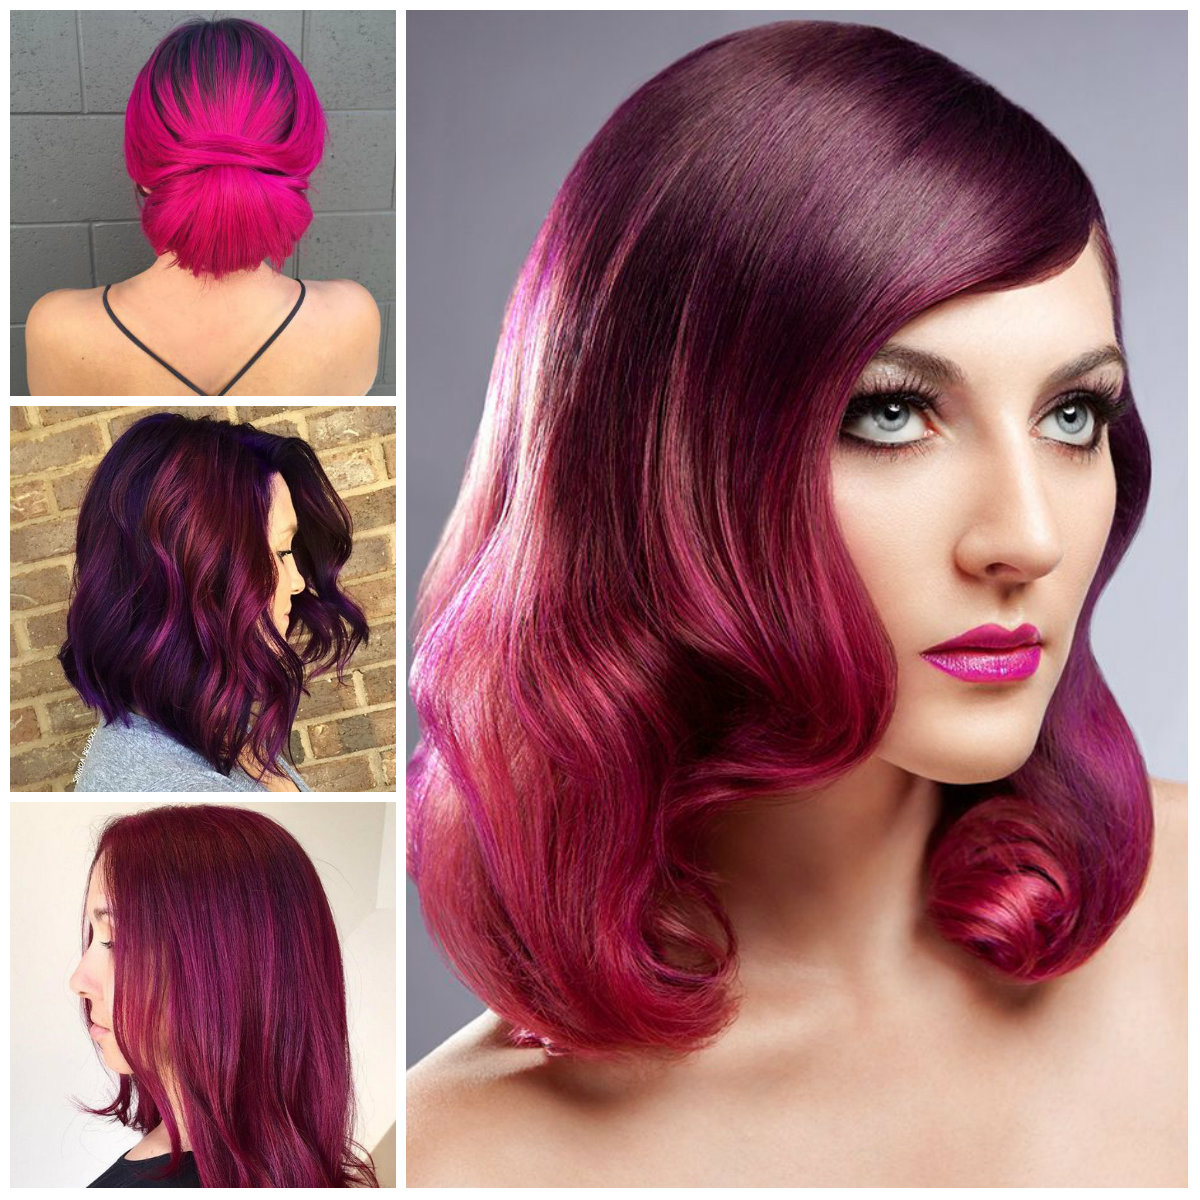 Best Hairstyles for Magenta Hair Color | 2019 Haircuts ...